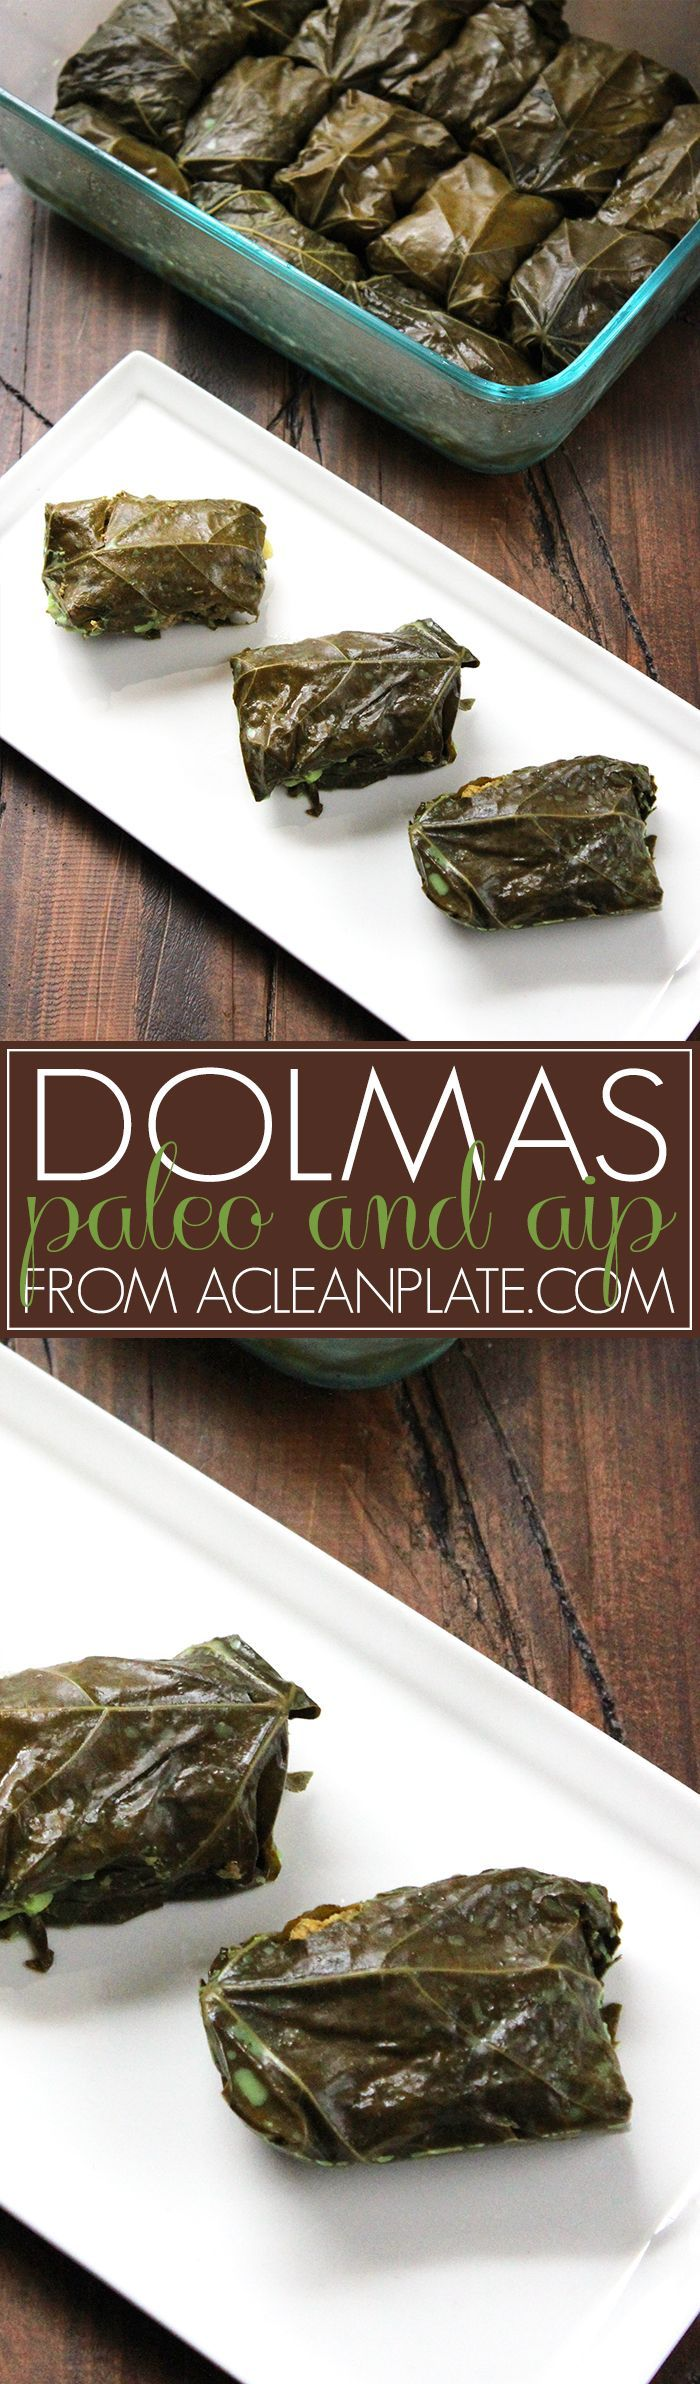 Easy Dolmas recipe from A Clean Plate